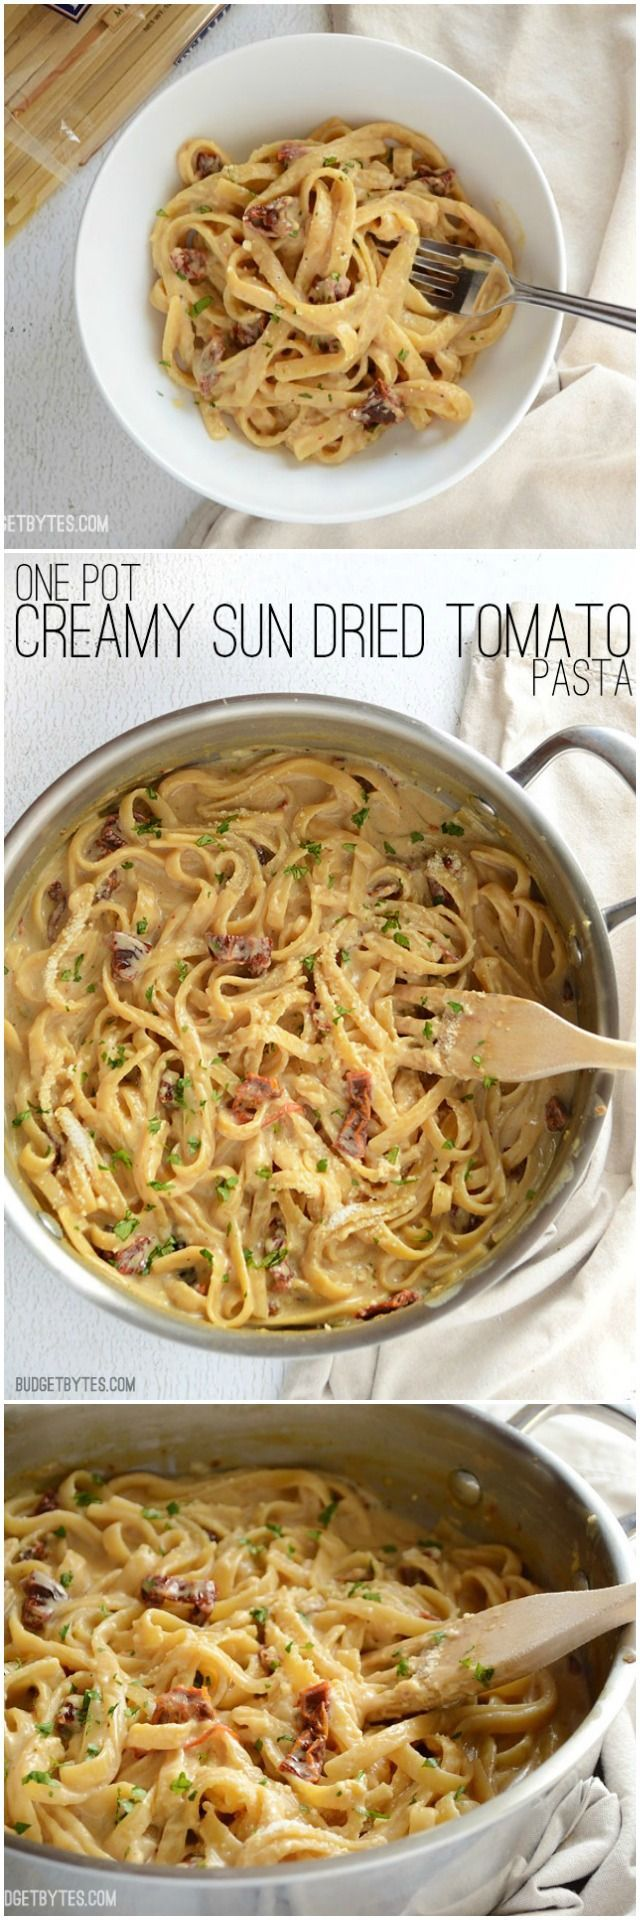 Pot Creamy Sun Dried Tomato Pasta This incredibly fast and easy Creamy Sun Dried Tomato Pasta cooks in 30 minutes and uses just one pot. Make dinner delicious any night of the week! - This incredibly fast and easy Creamy Sun Dried Tomato Pasta cooks in 30 minutes and uses just one pot. Make dinner delicious any night of the week! -